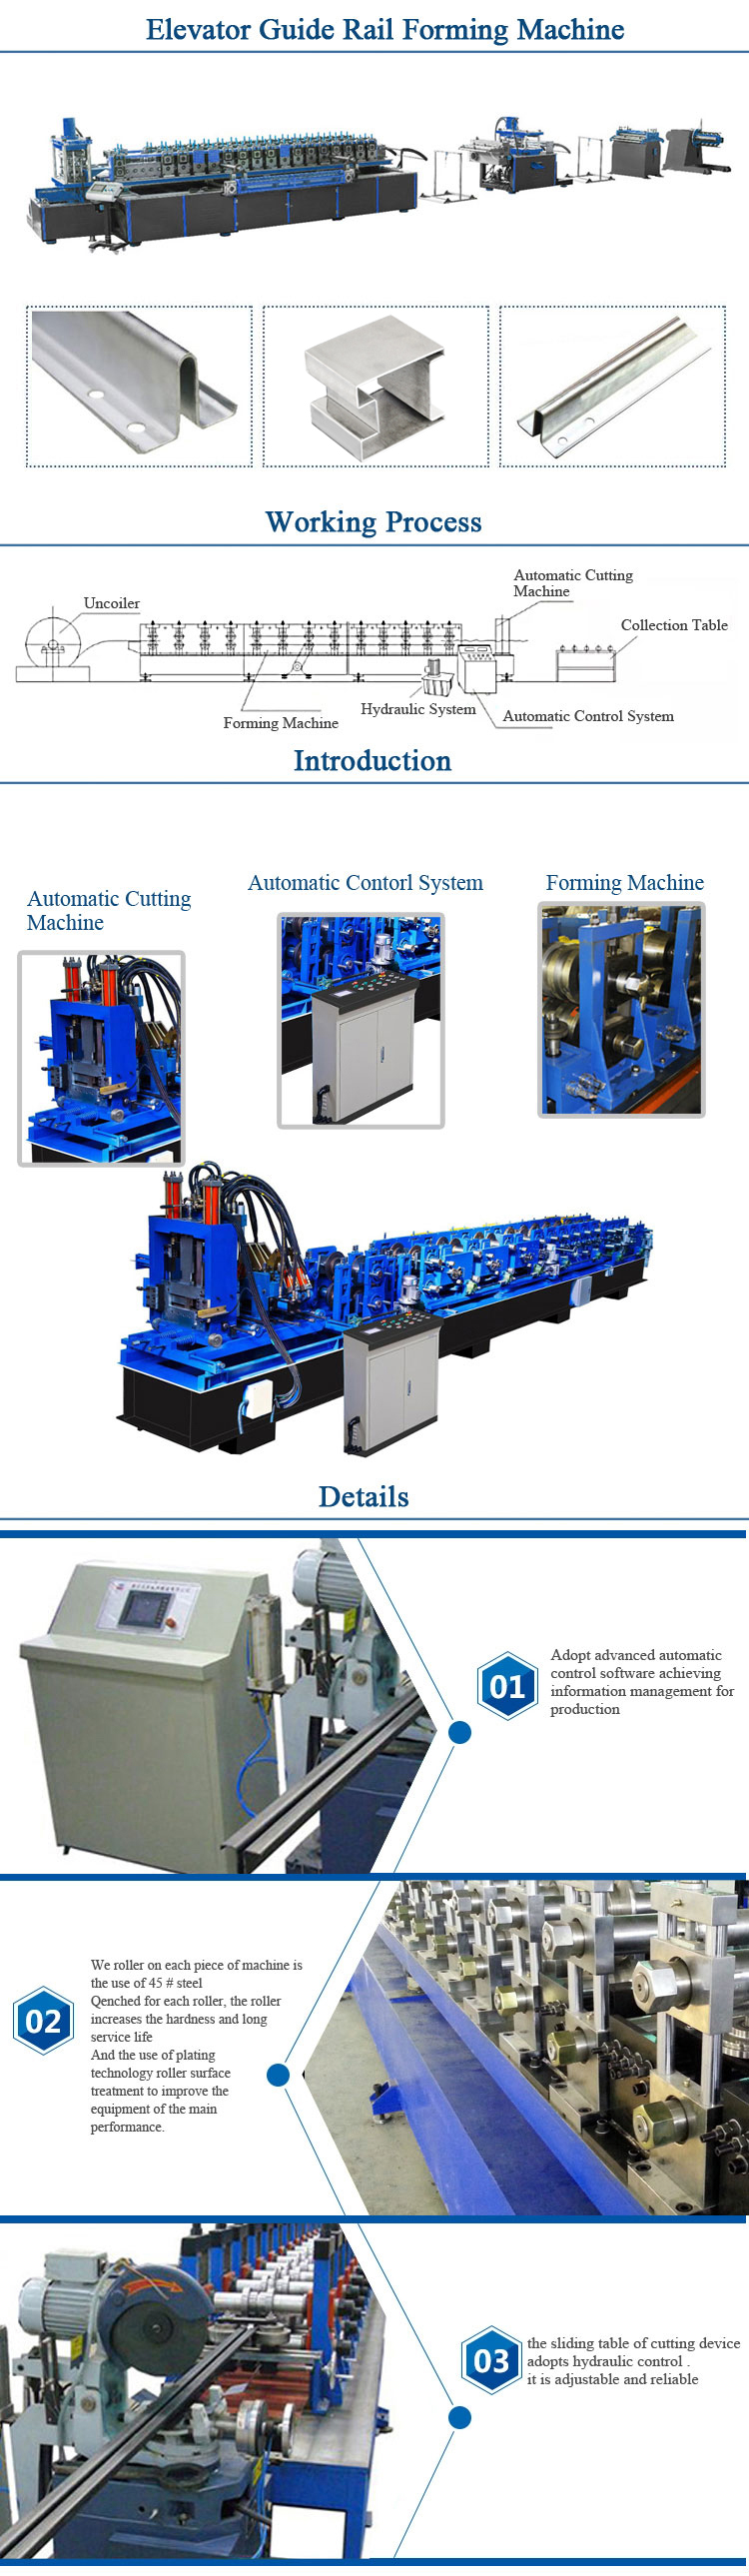 Steel Profile Elevator Guide Rail Roll Forming Machine for Sale